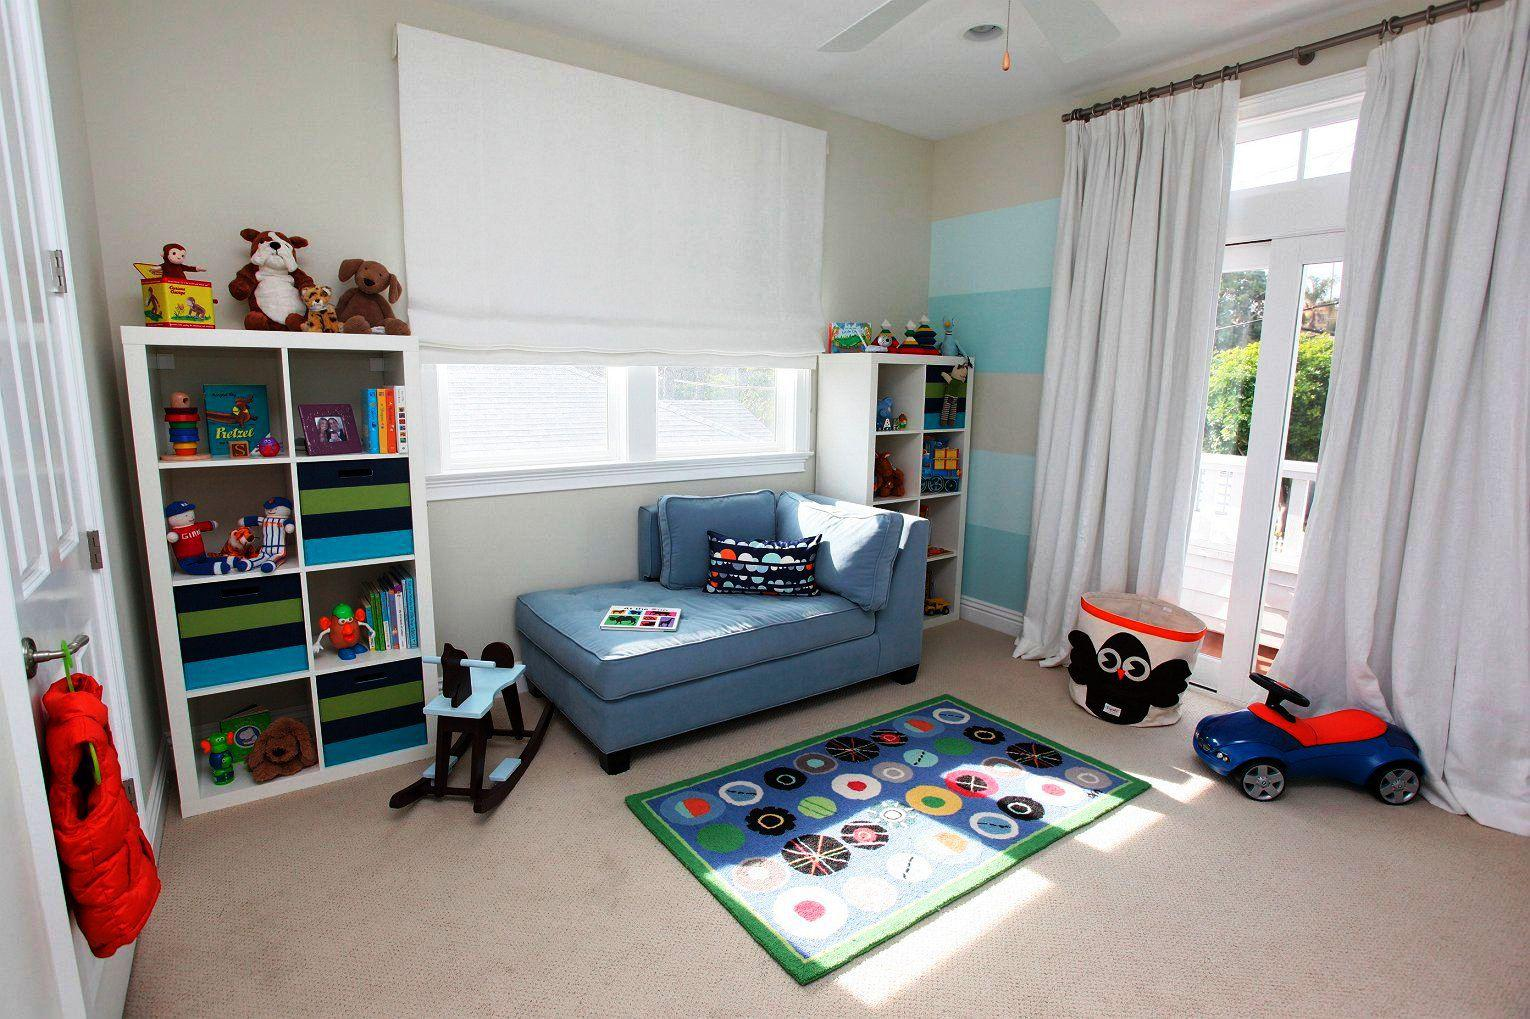 Hot Wheels Bedding And Bedroom Decor Home Decorating Ideas